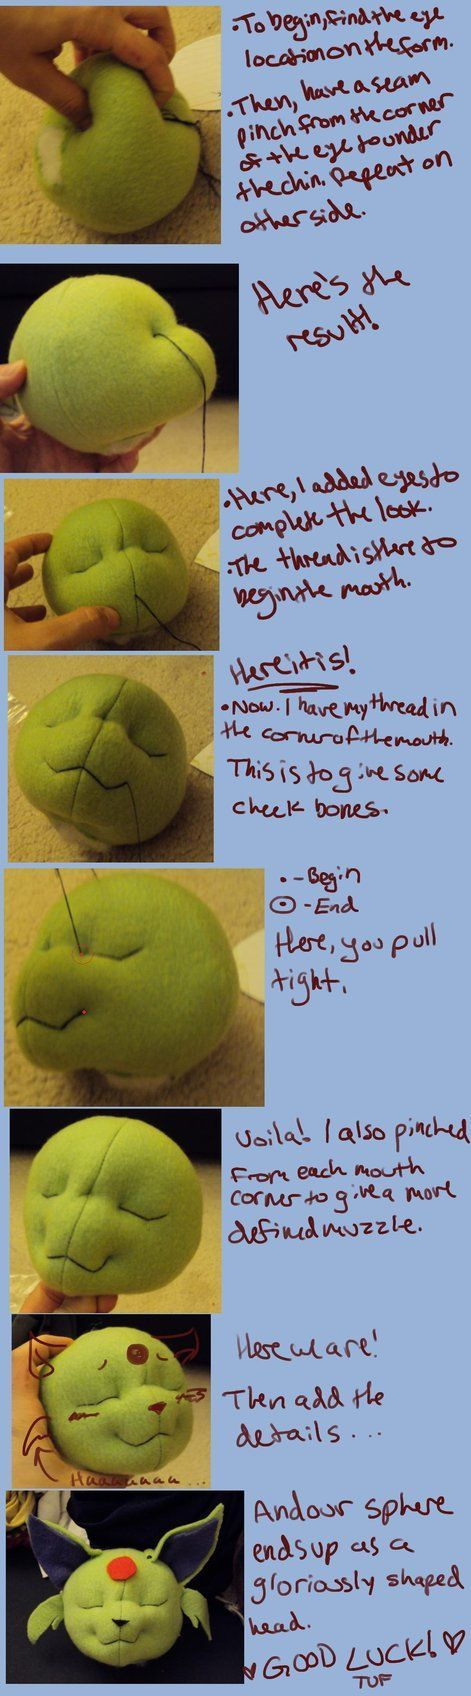 I don't know if I'll ever do this but having the i formation can't hurt. Needle Sculpting Tutorial by ~ThisUsernameFails on deviantART